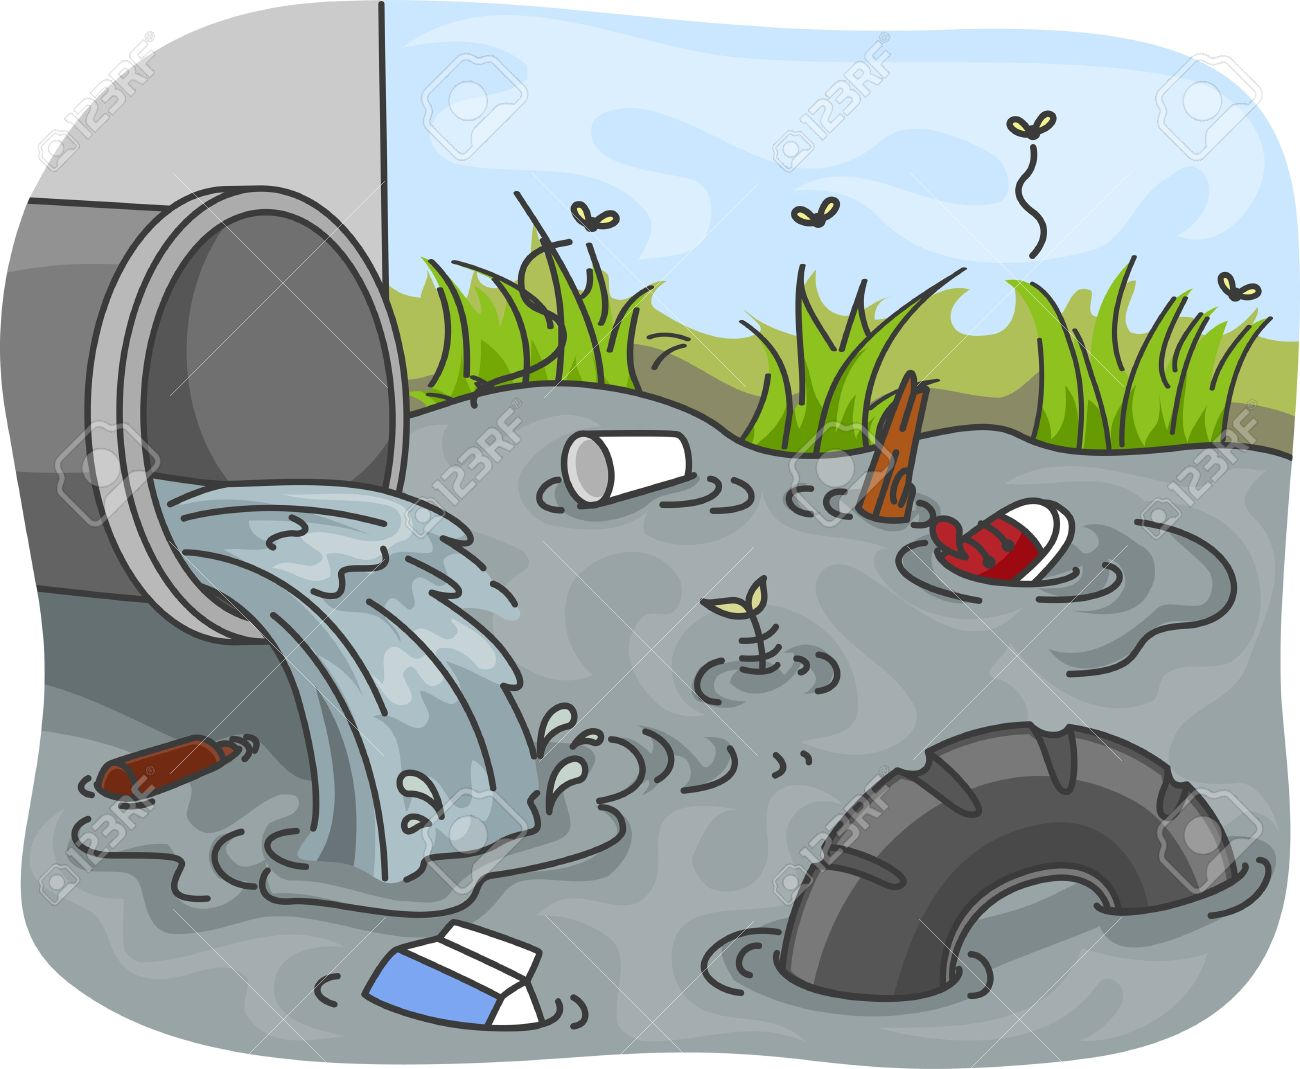 industrial pollution clipart - photo #33